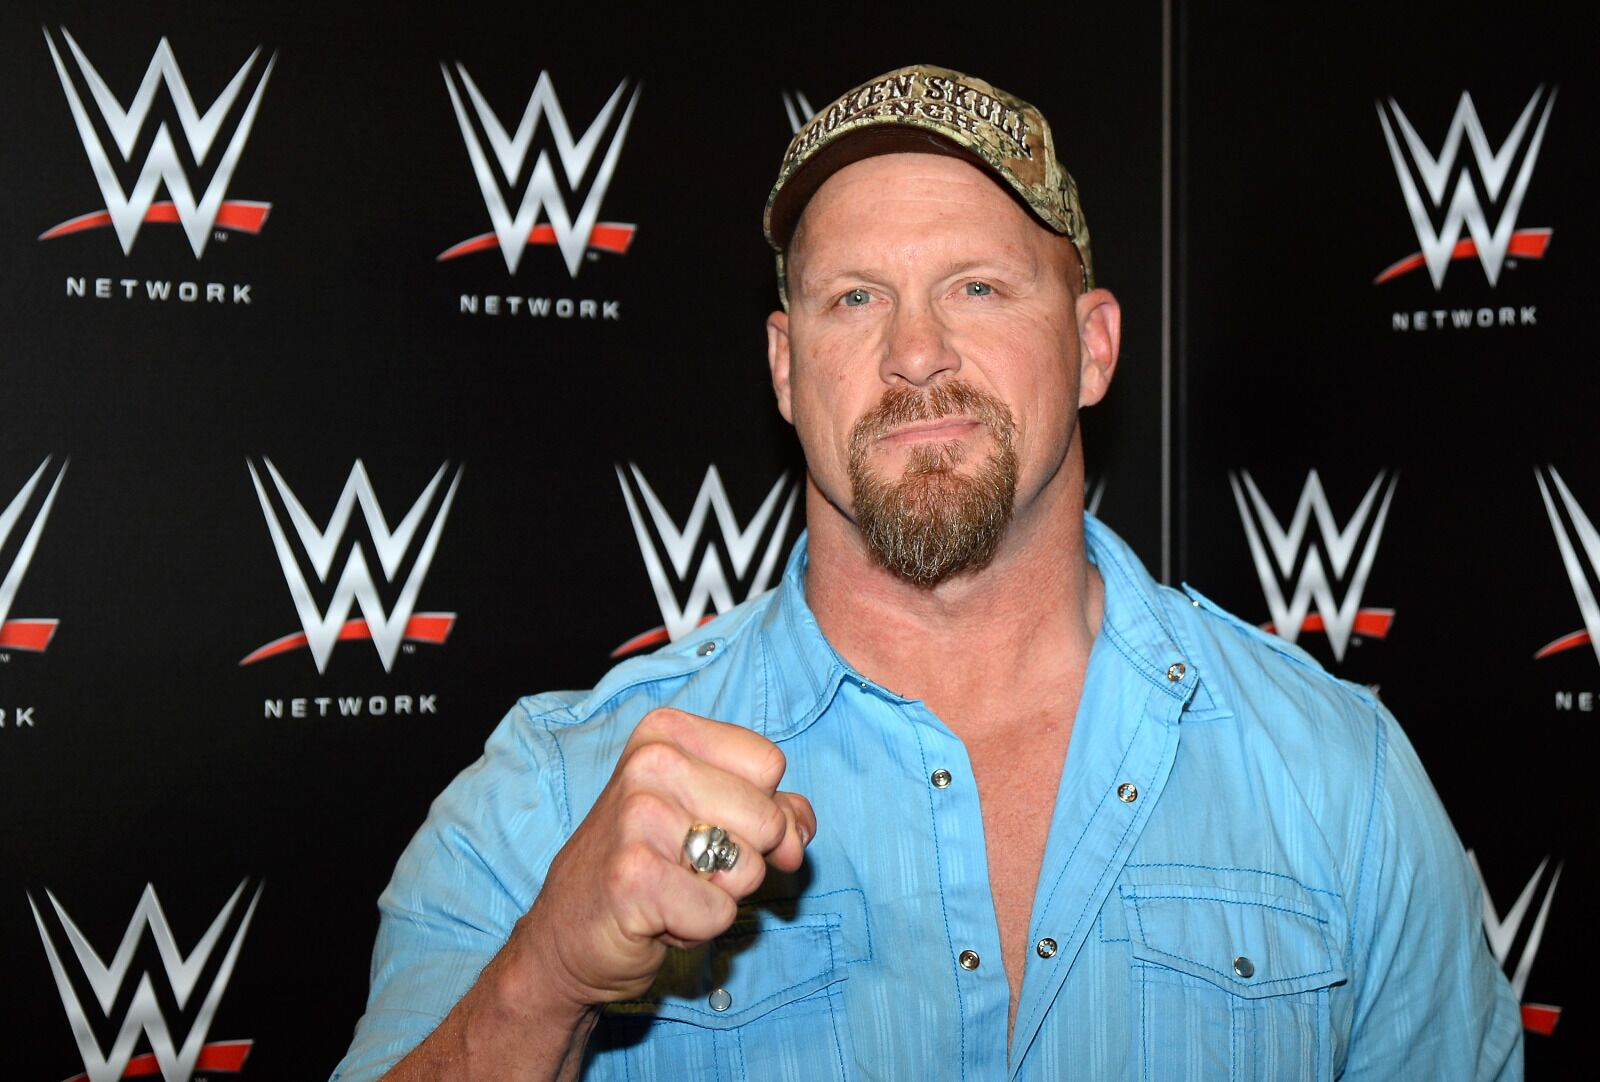 WWE Raw Reunion needs to pair Stone Cold with Kevin Owens